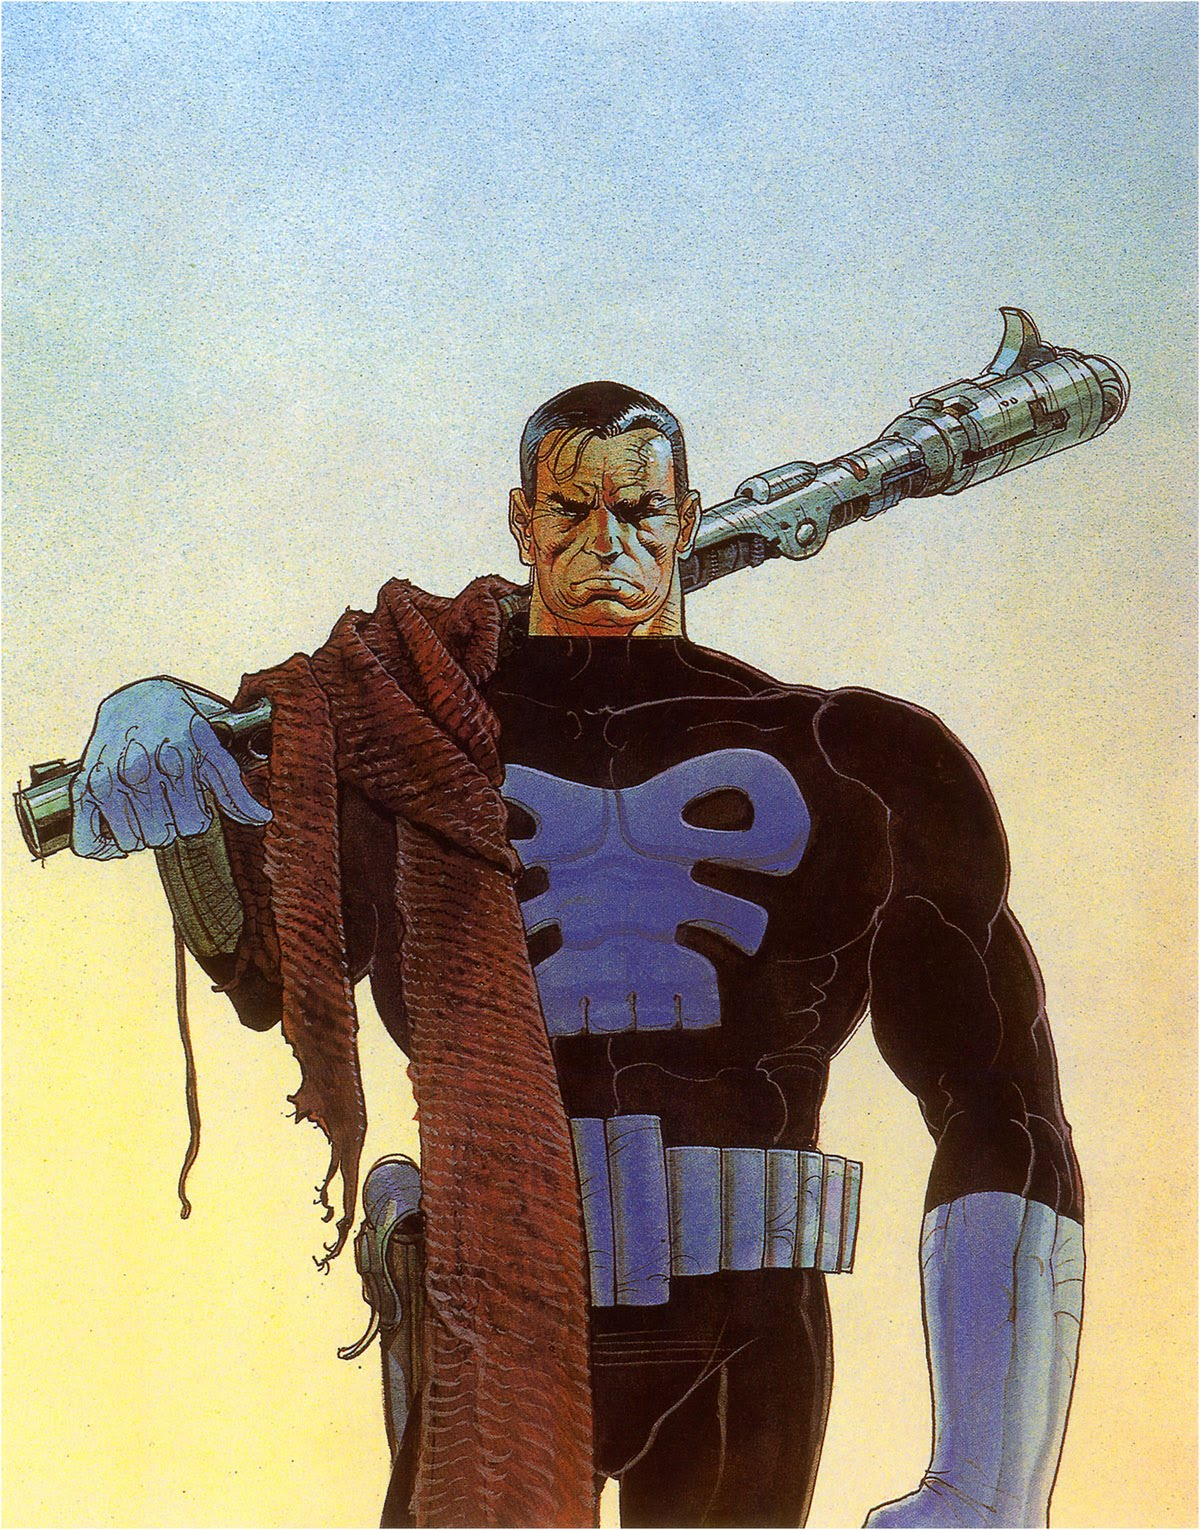 Punisher by Moebius